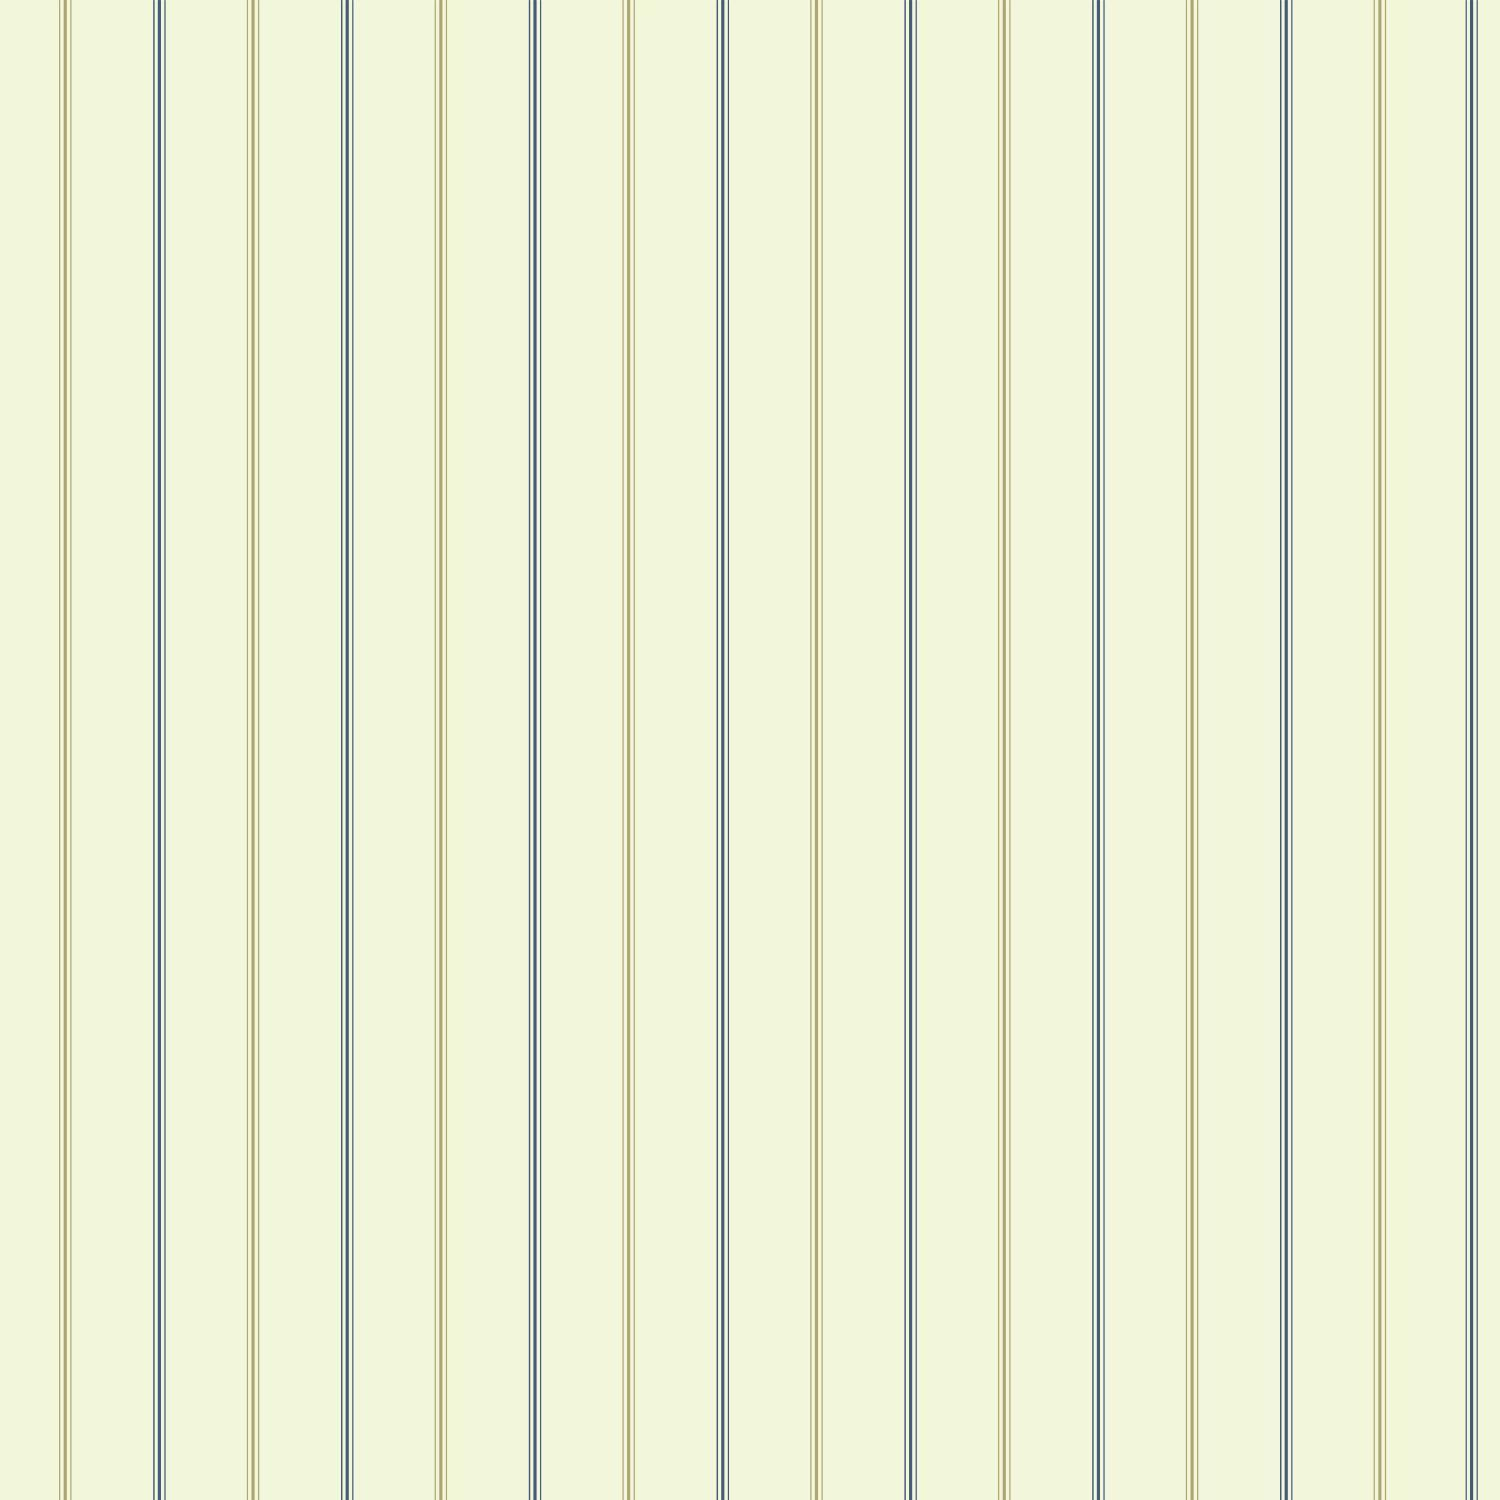 3-Pinstripe Wallpaper - Gold and Blue